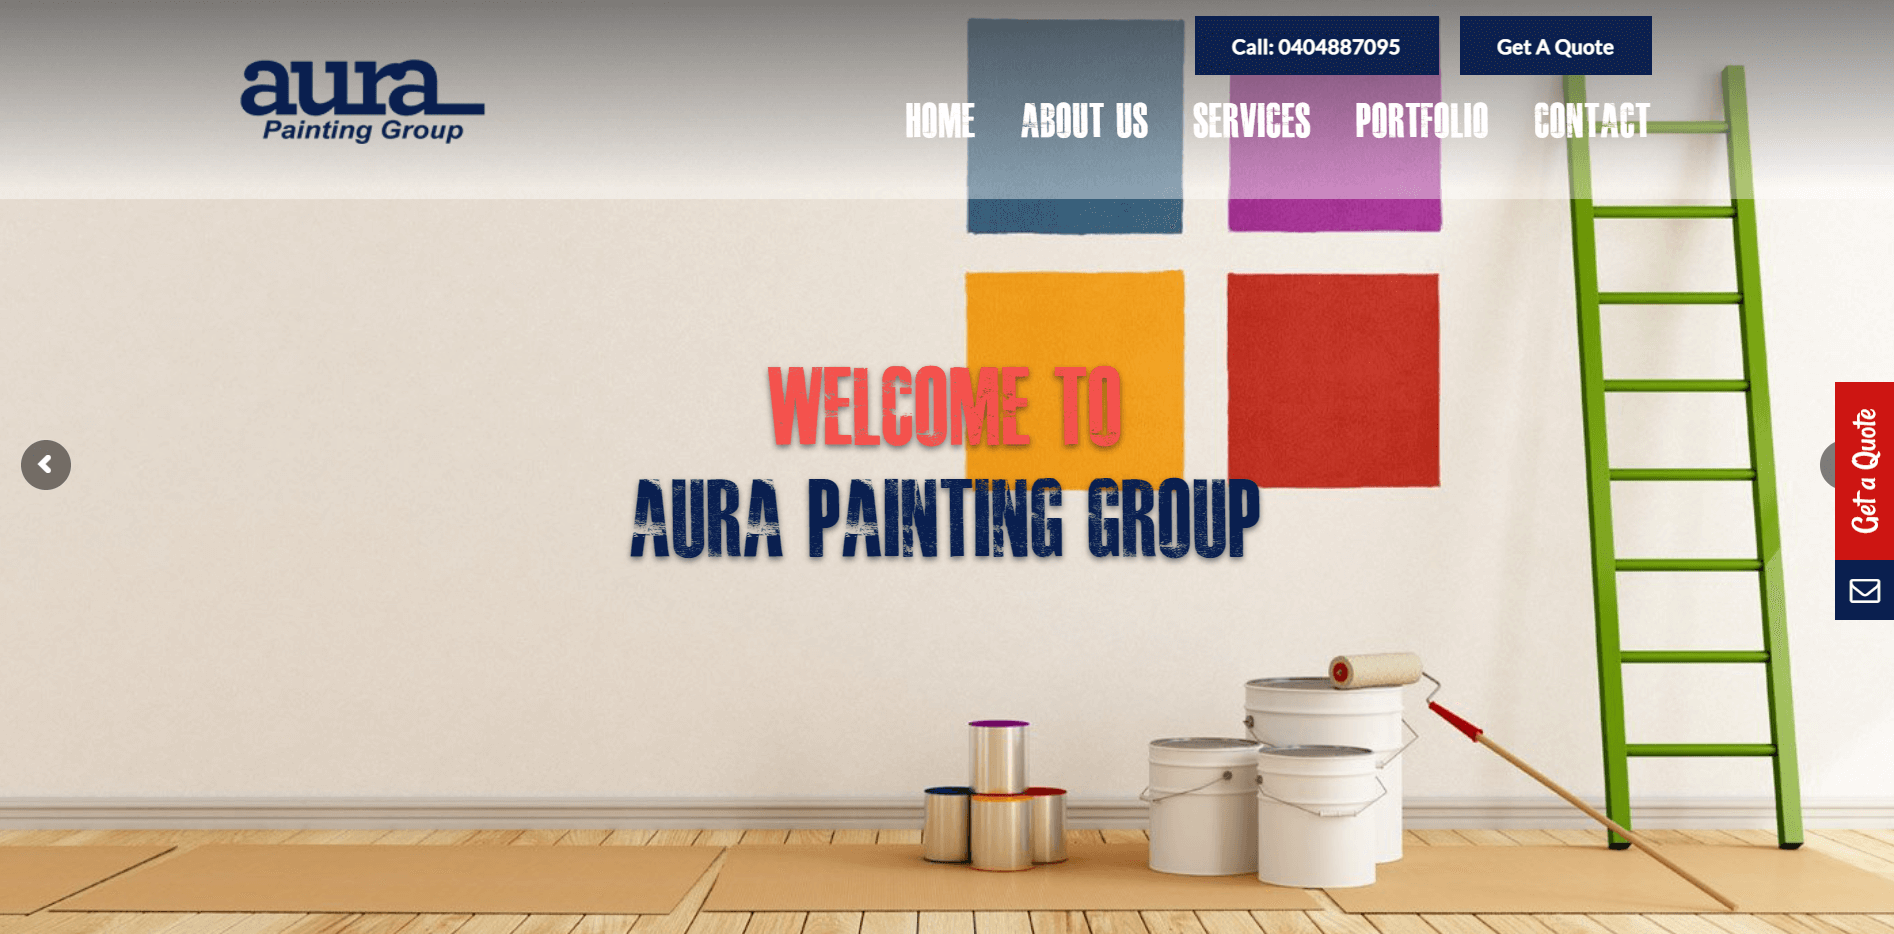 aura painting group